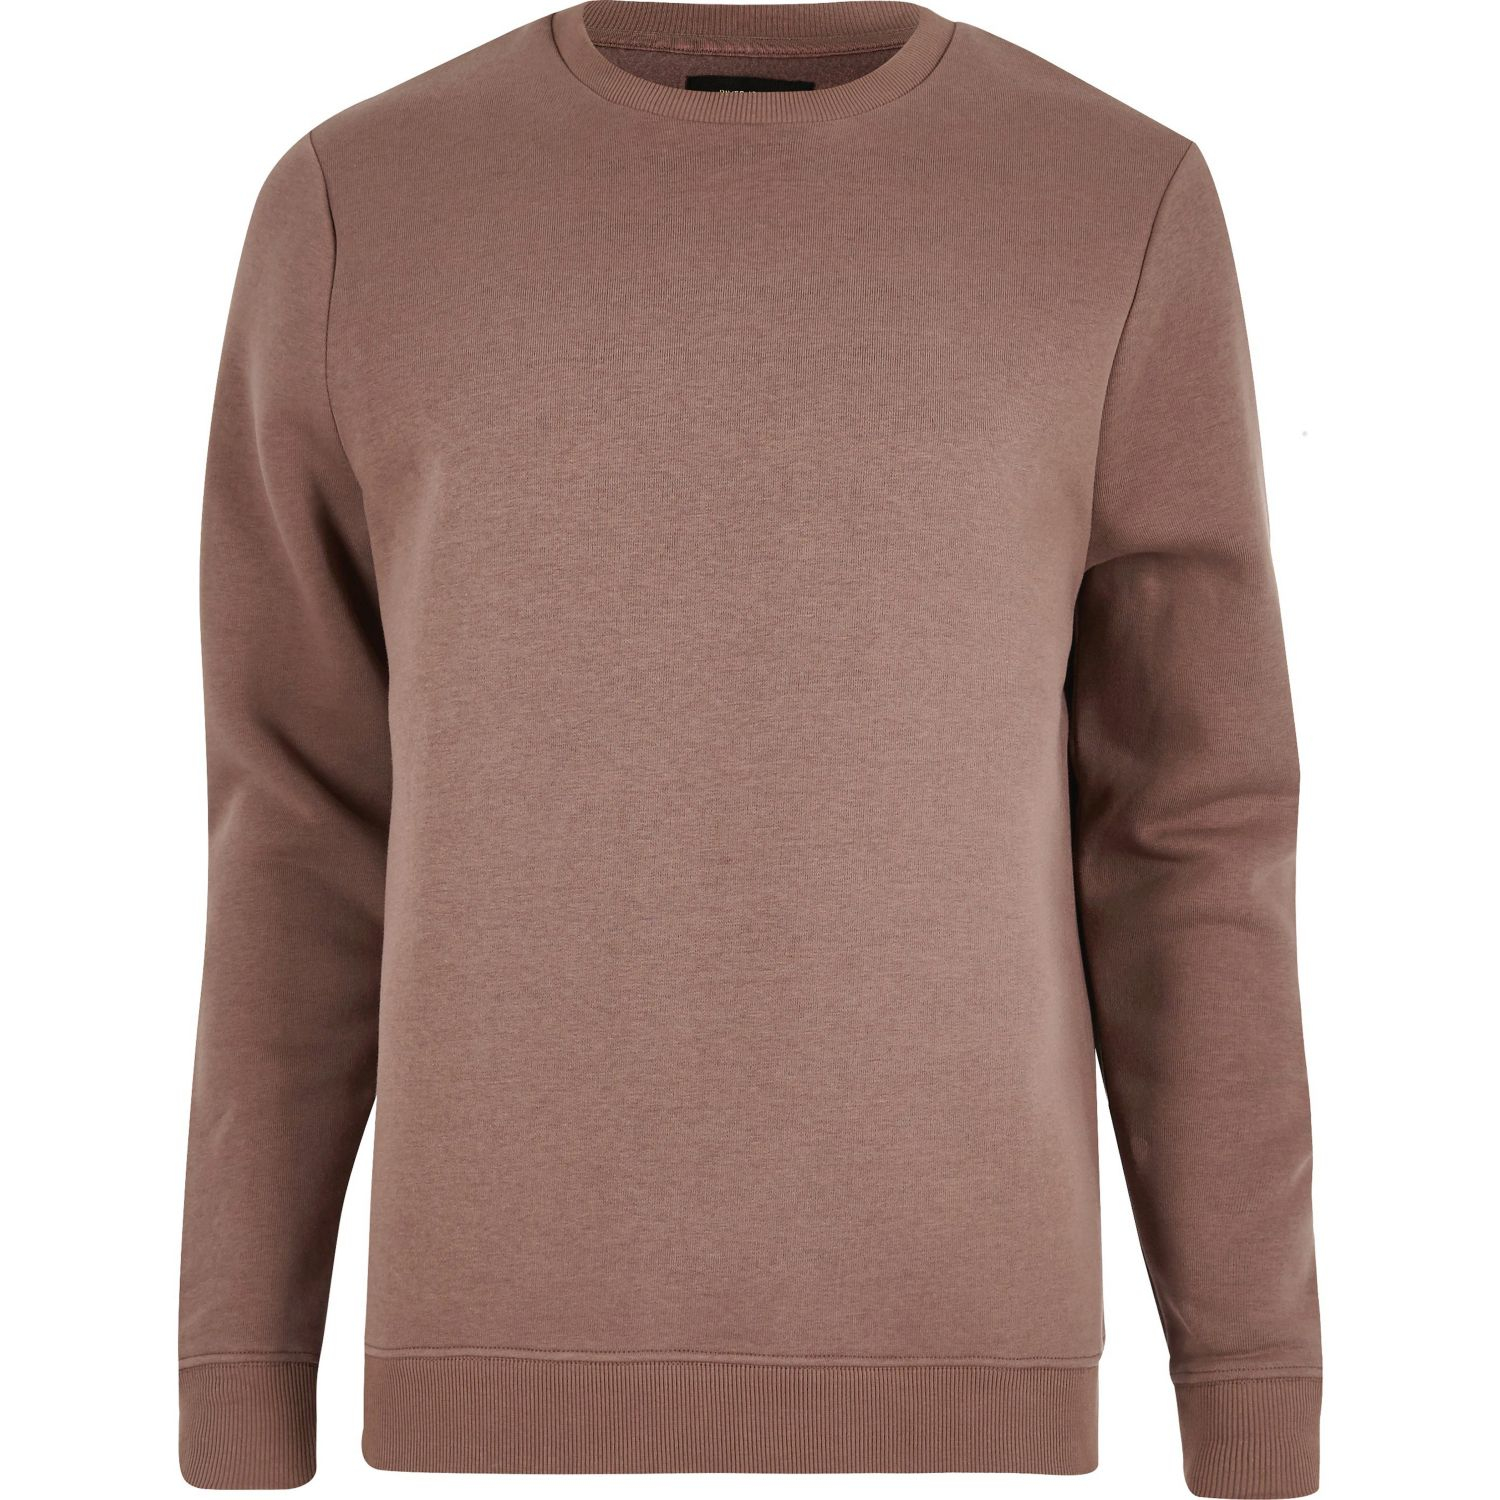 Find great deals on eBay for brown sweatshirt. Shop with confidence.